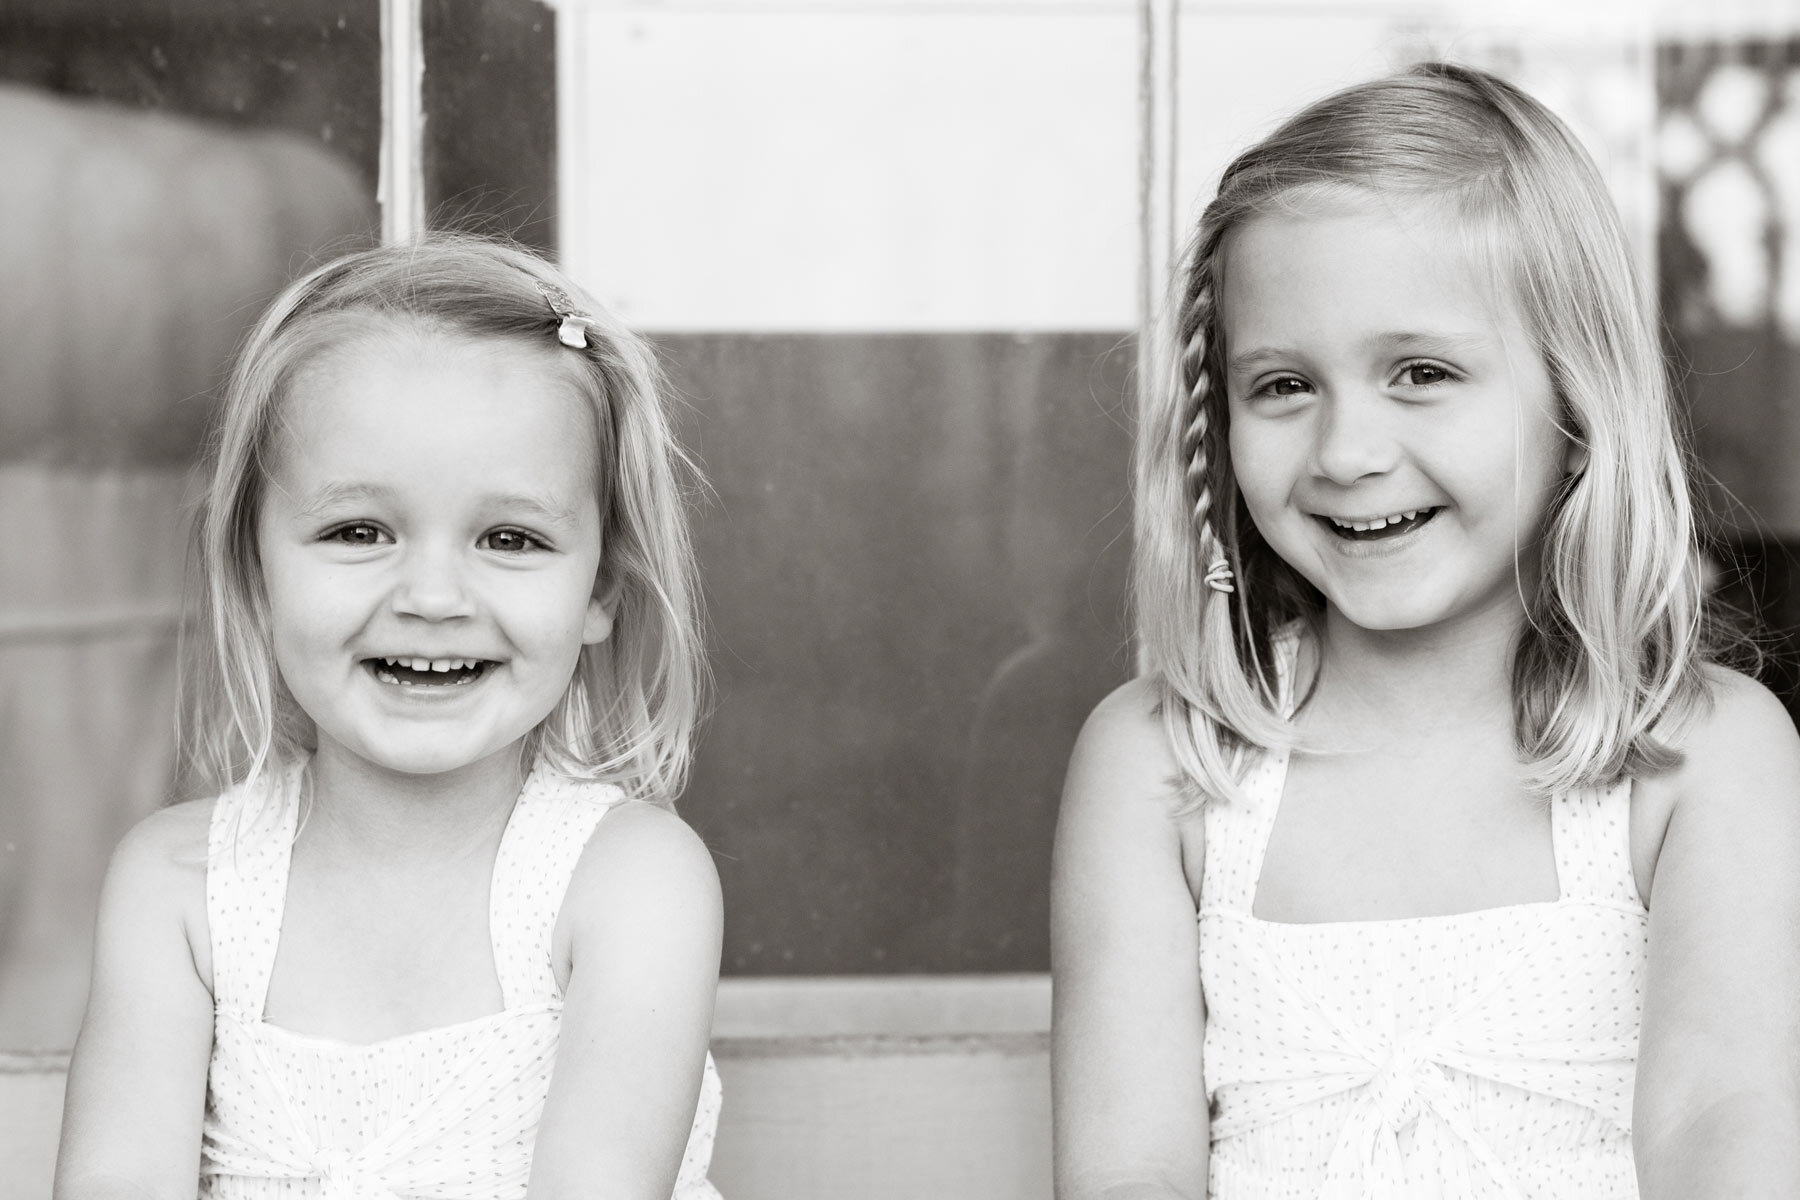 Sisters-Kids-Laughing-Relaxed-Happy-Fun-Photo-Dondis.jpg